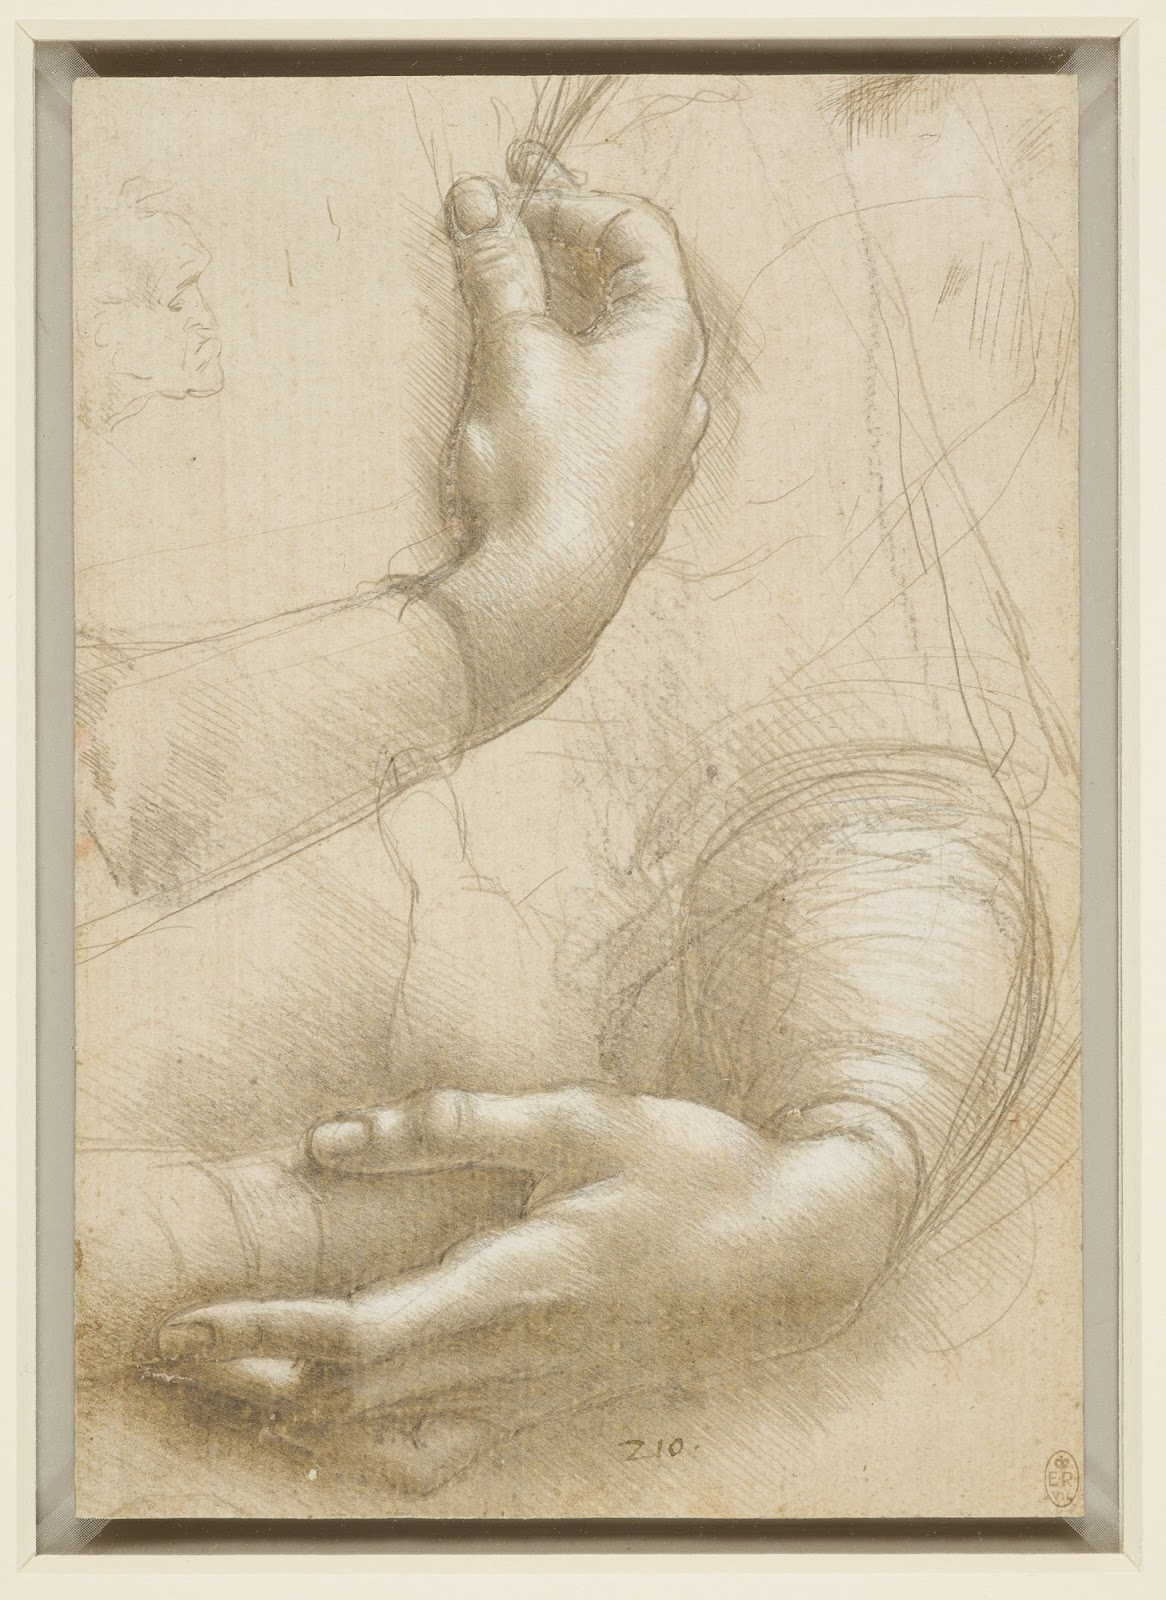 da Vinci, study of hands